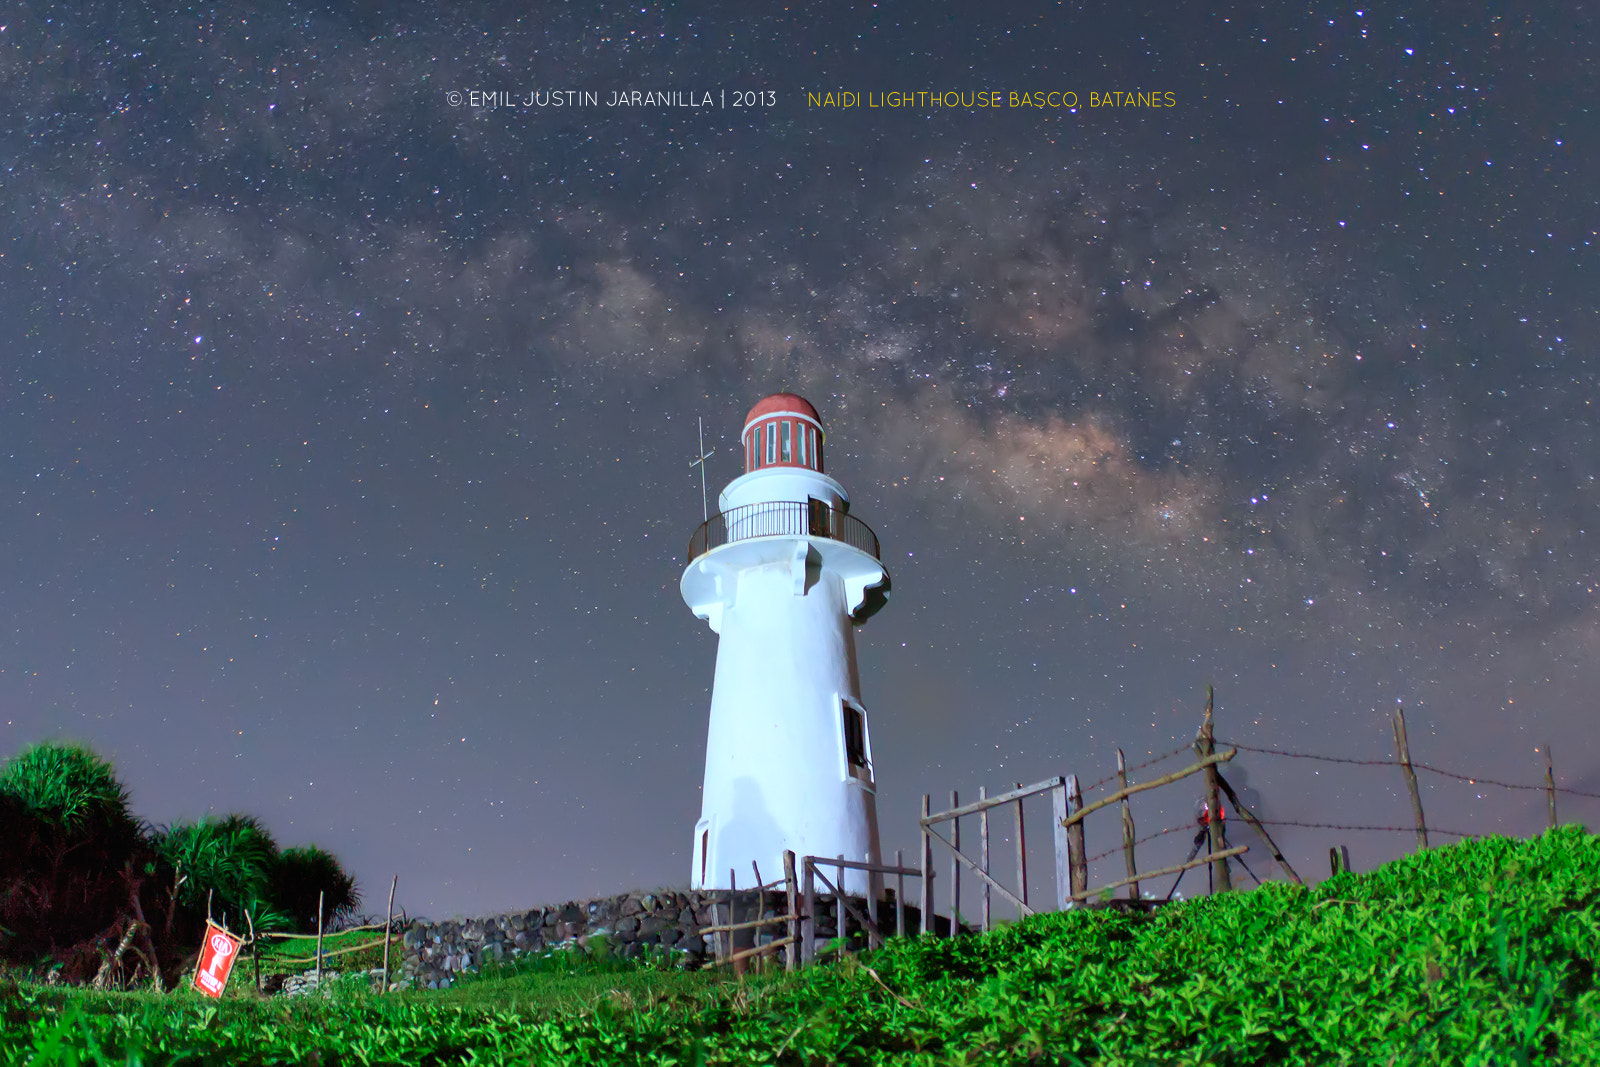 Photograph Naidi Milkyway by Emil Justin Jaranilla on 500px